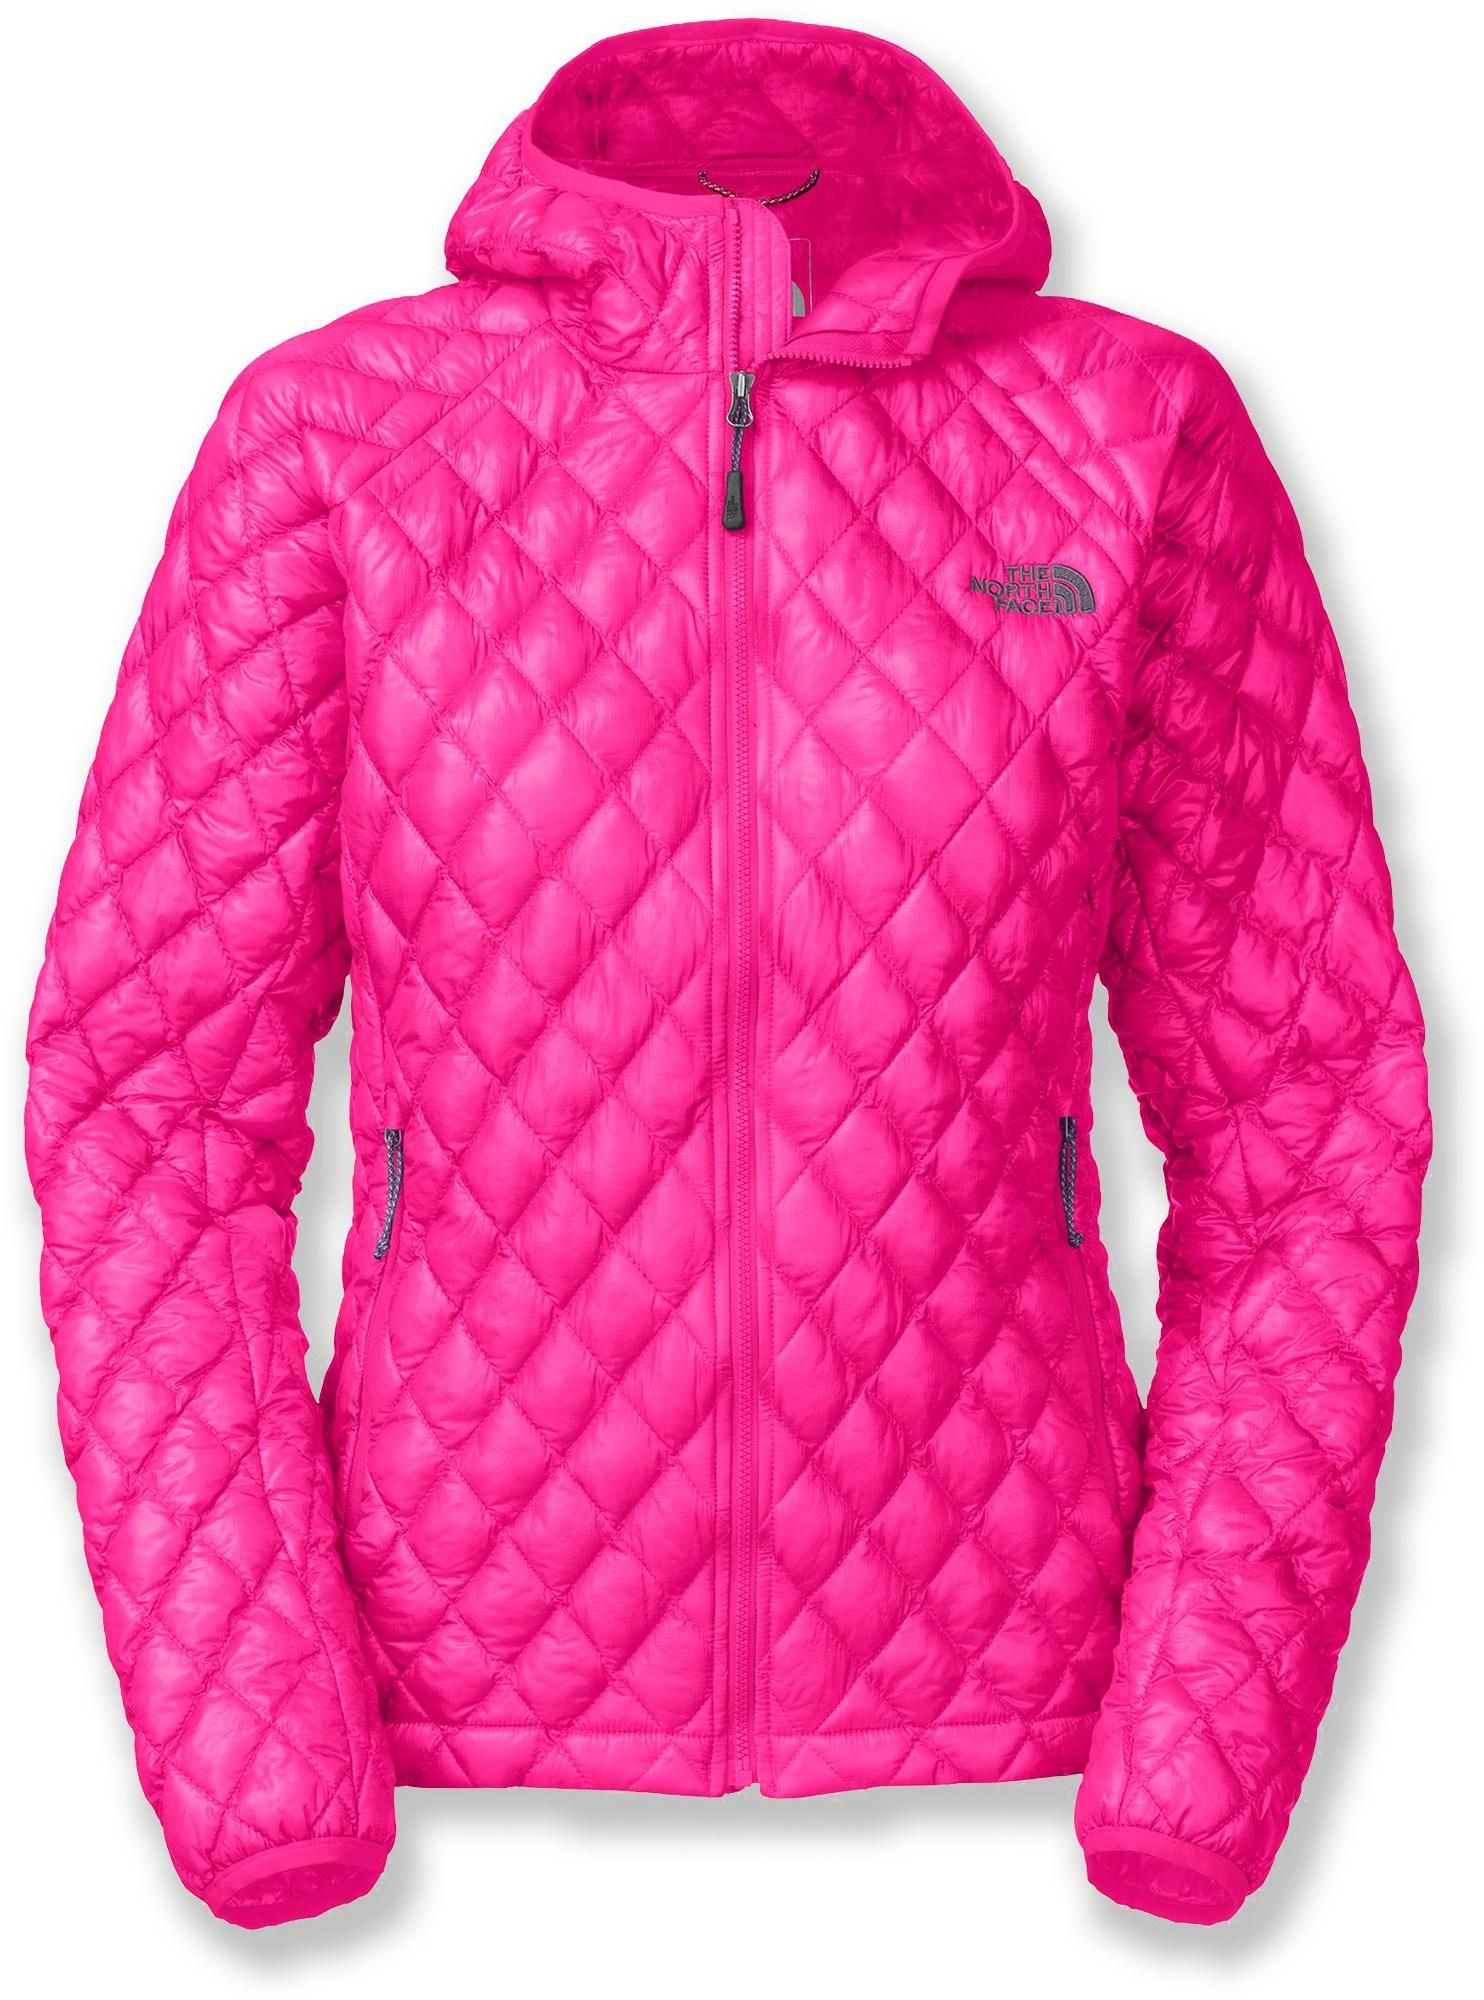 107957502 The North Face ThermoBall™ hoodie jacket for women puts ...